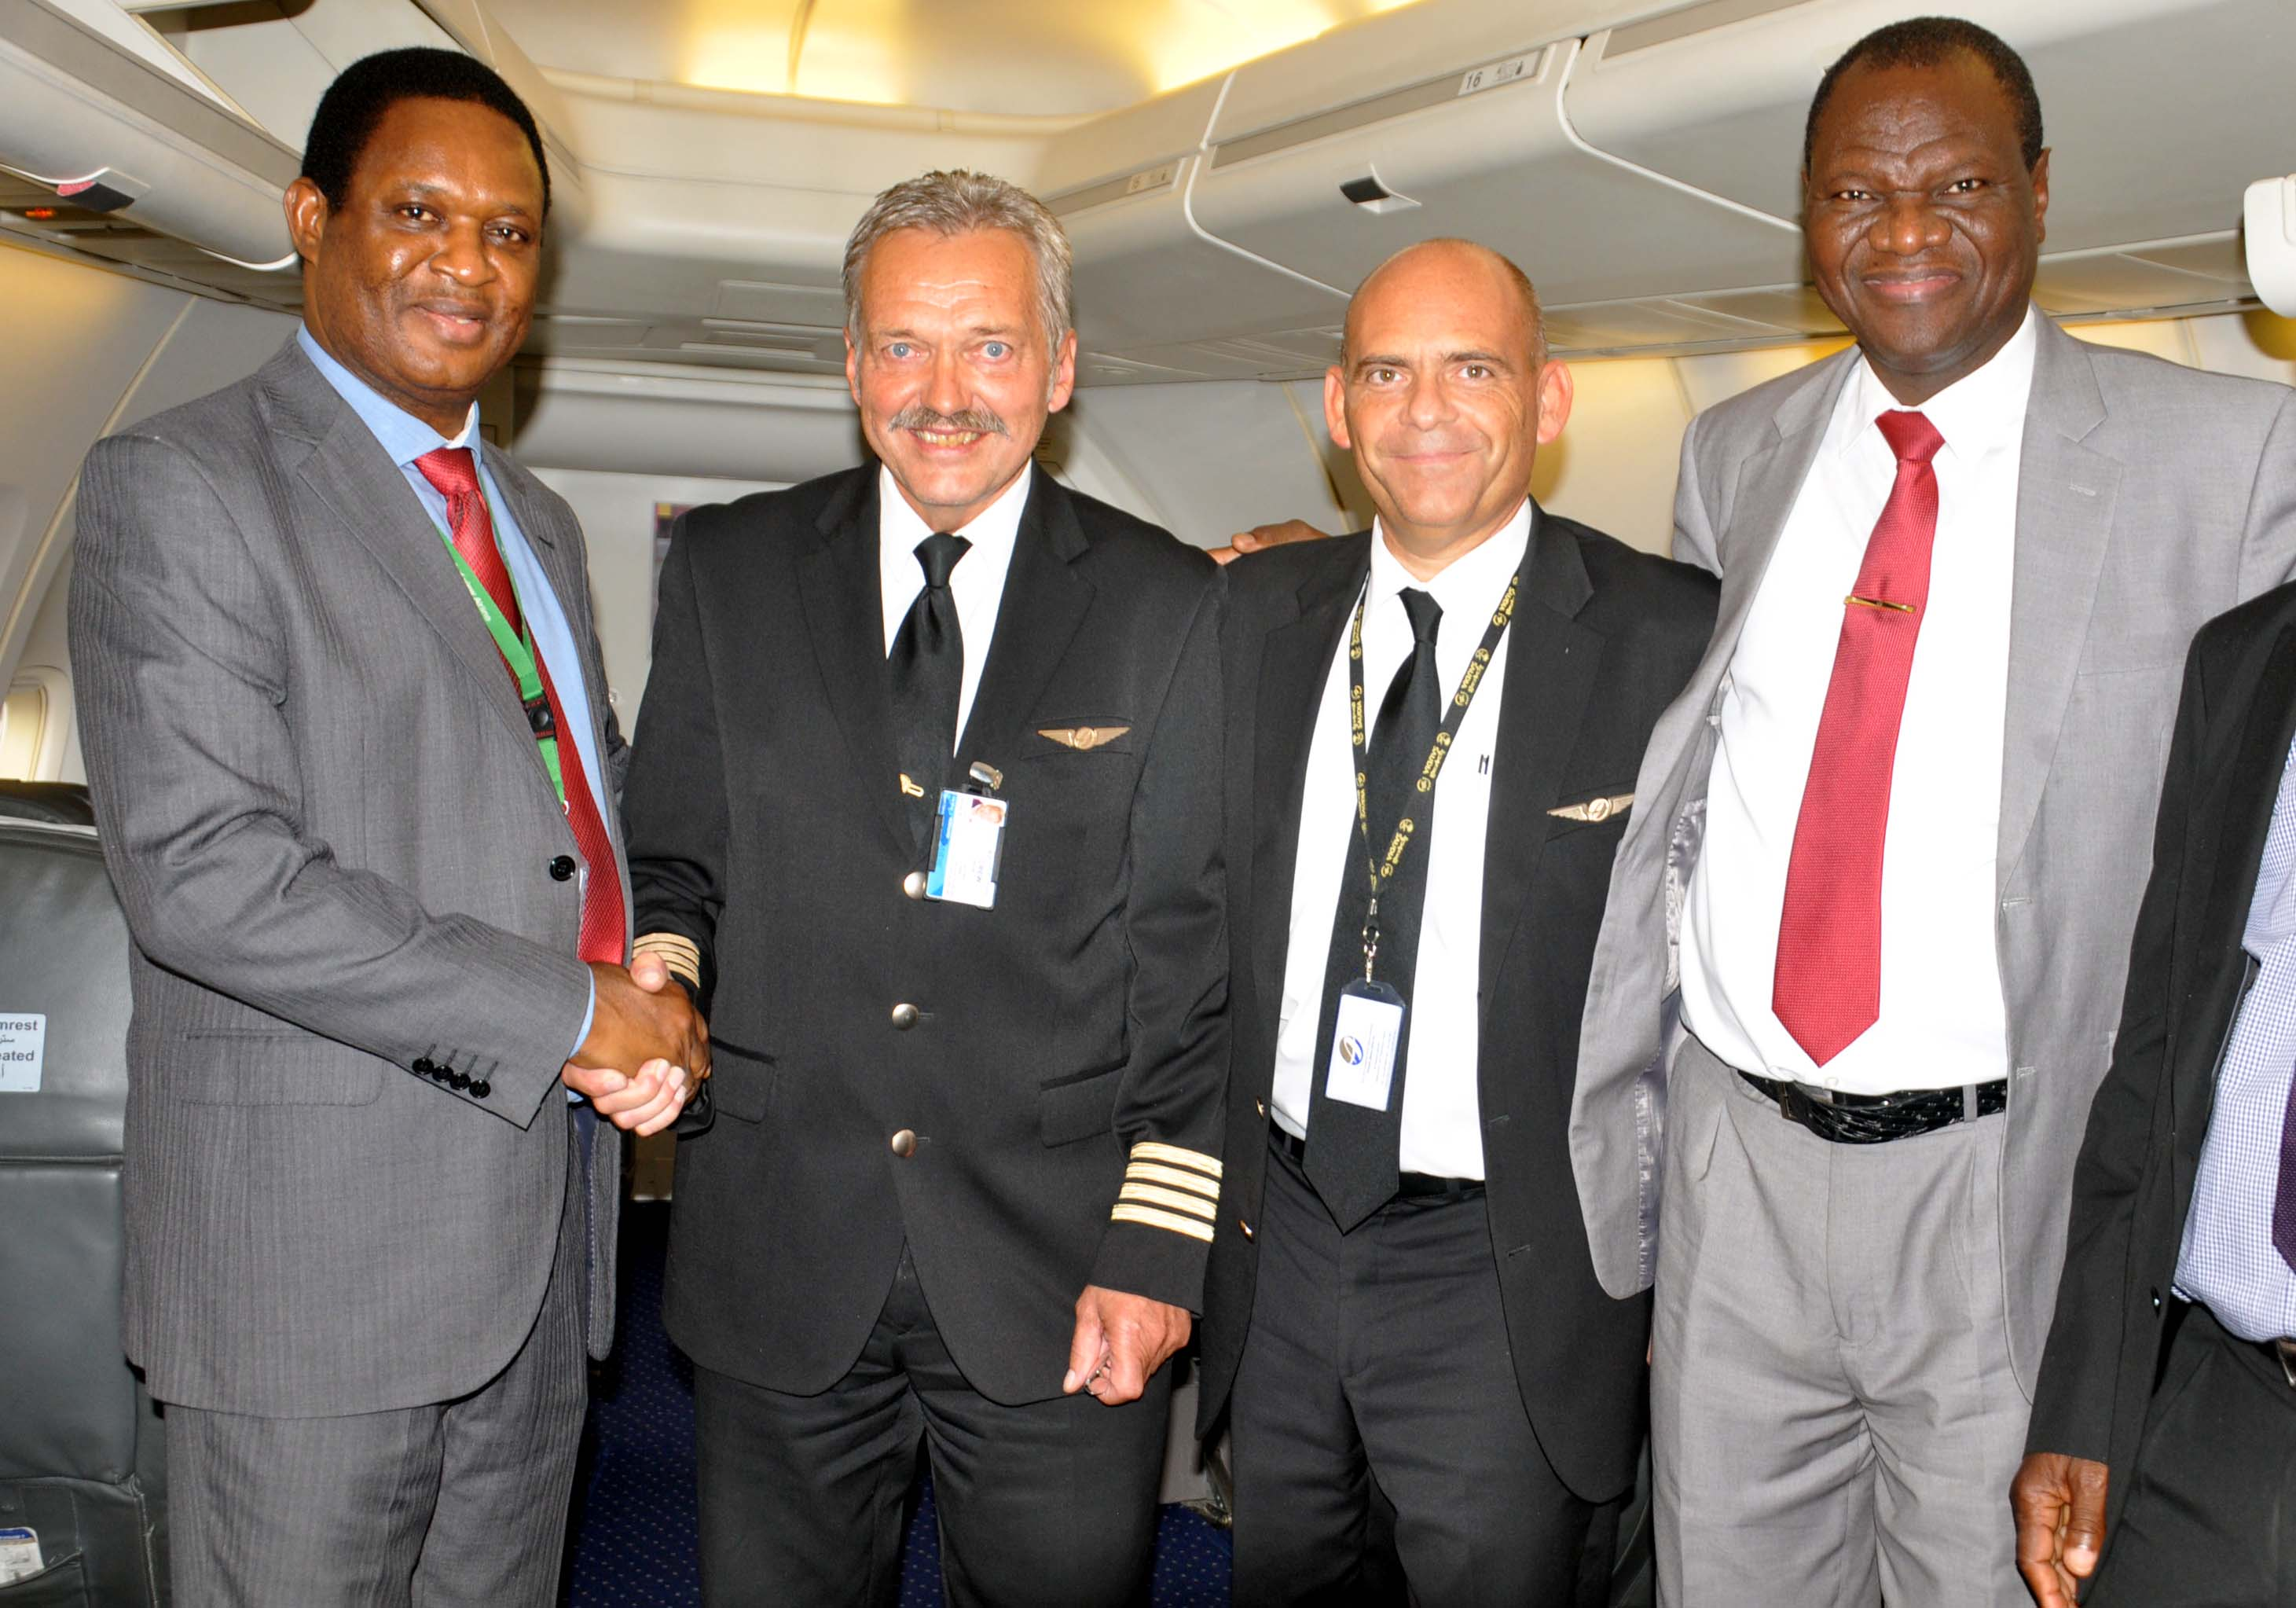 Head of Flight Operations, Med-View Airline Plc, Captain Godfrey Ogbogu, receiving Capt. Santiago Gomez and Director of Engineering, Med-View Airline Plc, Engr. Lookman Animashaun on their arrival from UK to Murtala Mohammed International Airport, Ikeja, Lagos.